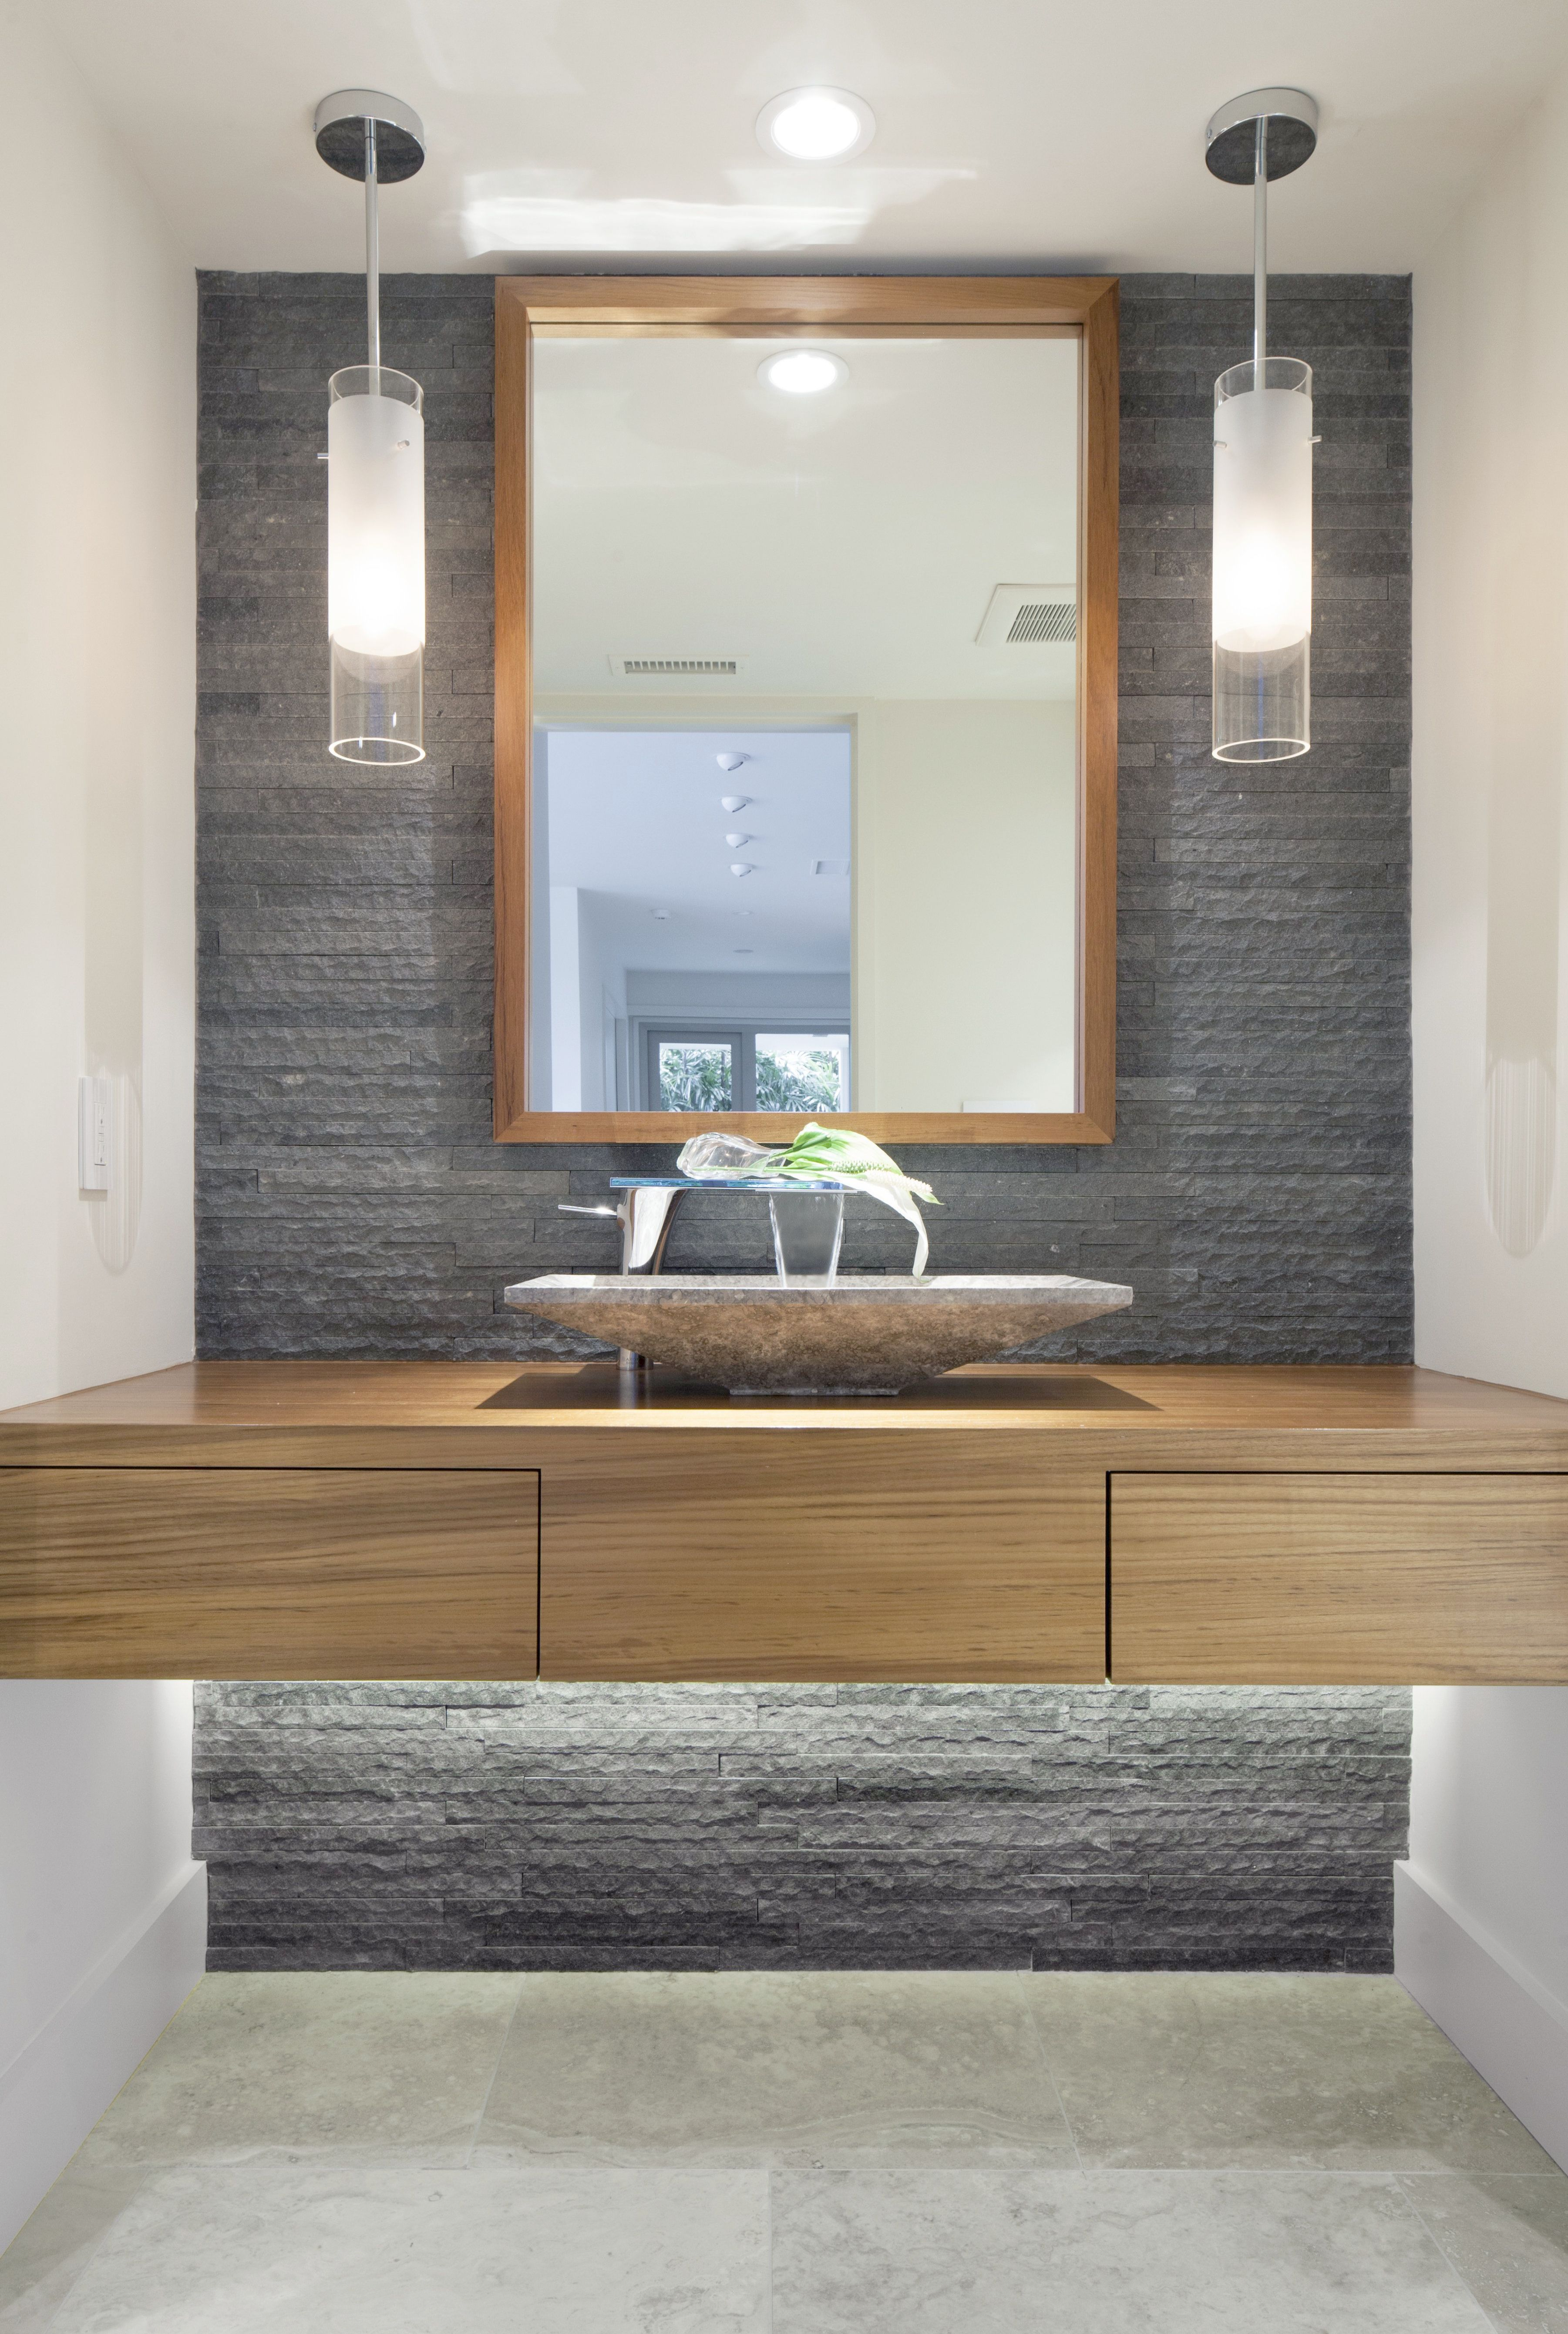 Aqua Bagno Loft Design Waschtisch - Ks.70 A Modern Bathroom With Natural Stone Accent Wall And Pendant